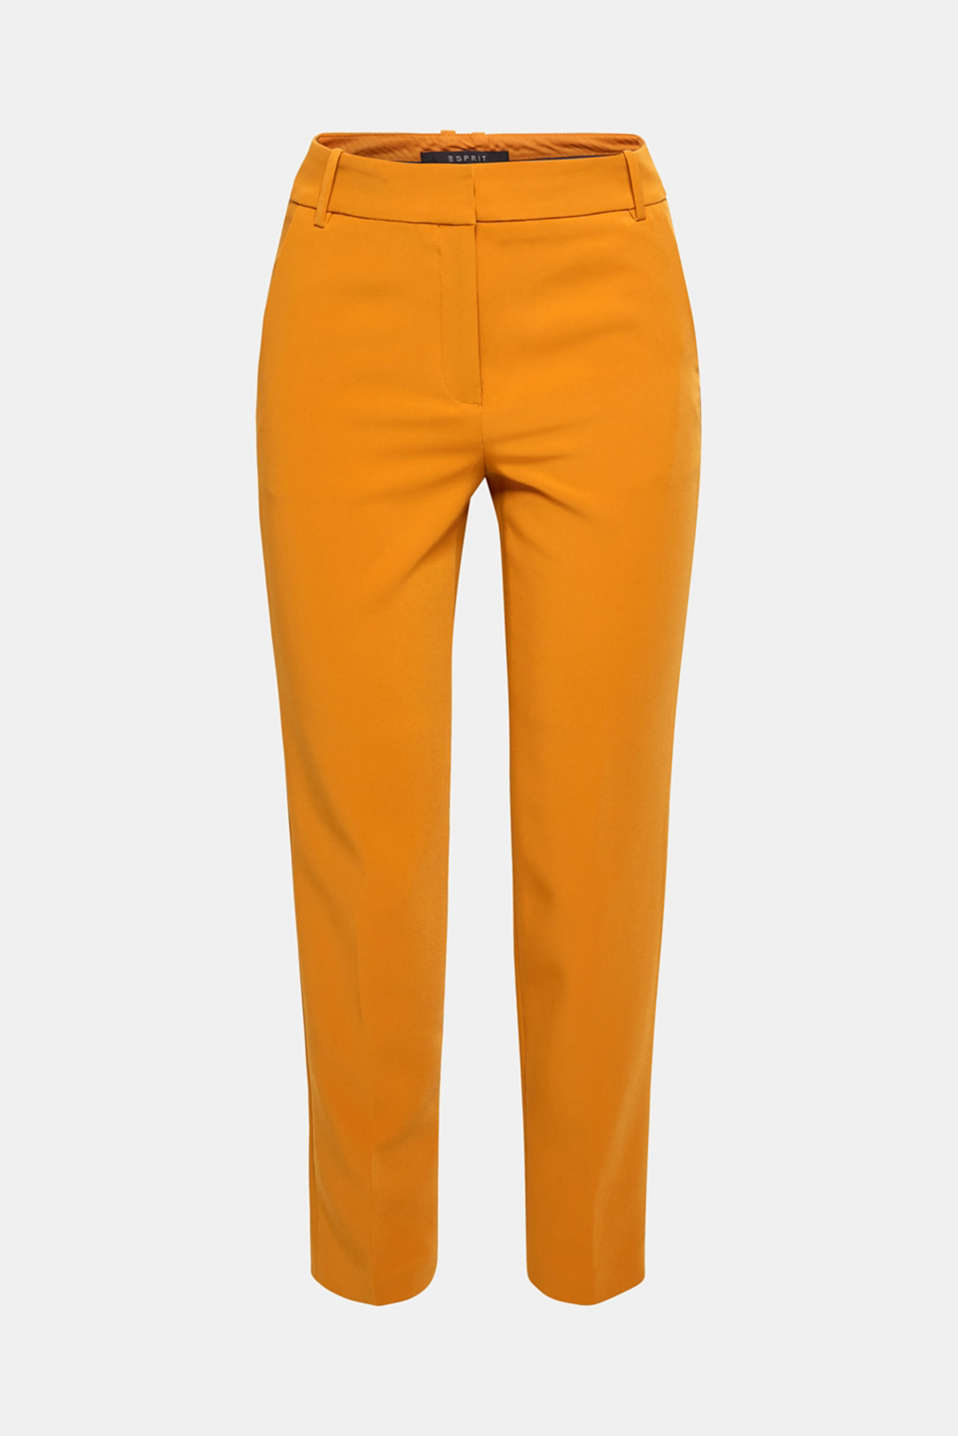 TAILORING Mix + Match stretch trousers, AMBER YELLOW, detail image number 8